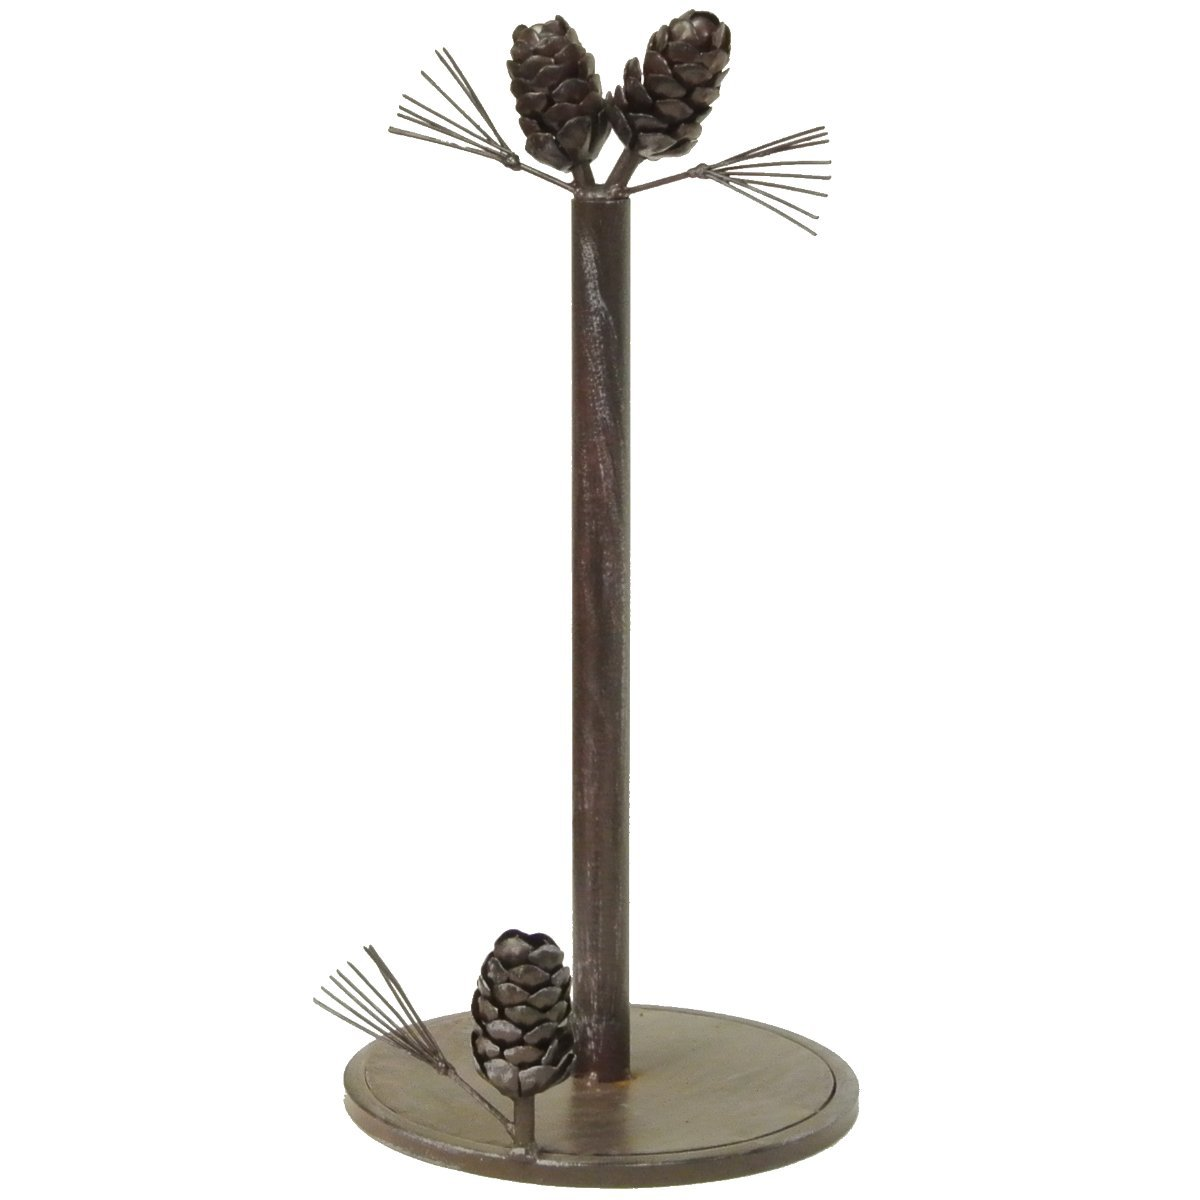 LL Home Pinecone Paper Towel Holder De Leon Collections 21782